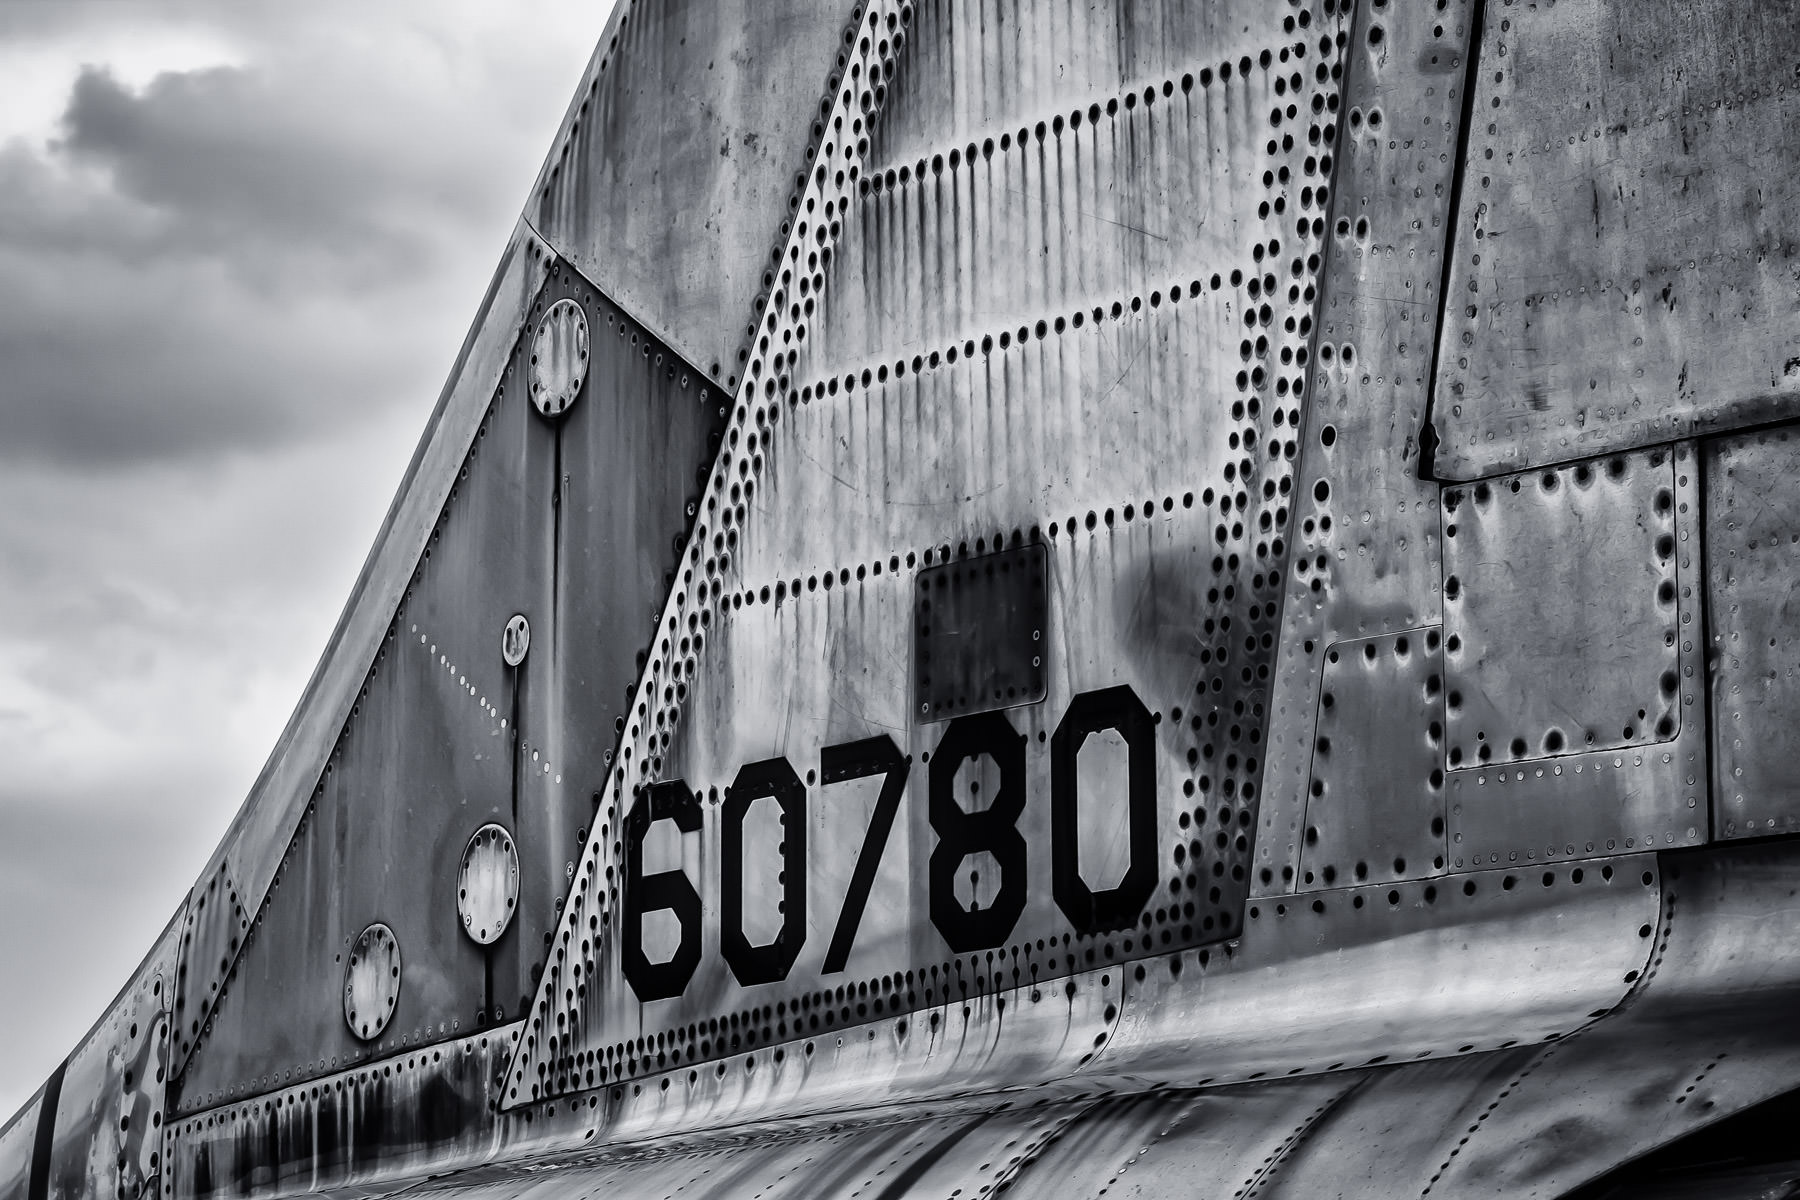 Detail of the tail of a Lockheed F-104 Starfighter at Addison, Texas' Cavanaugh Flight Museum.